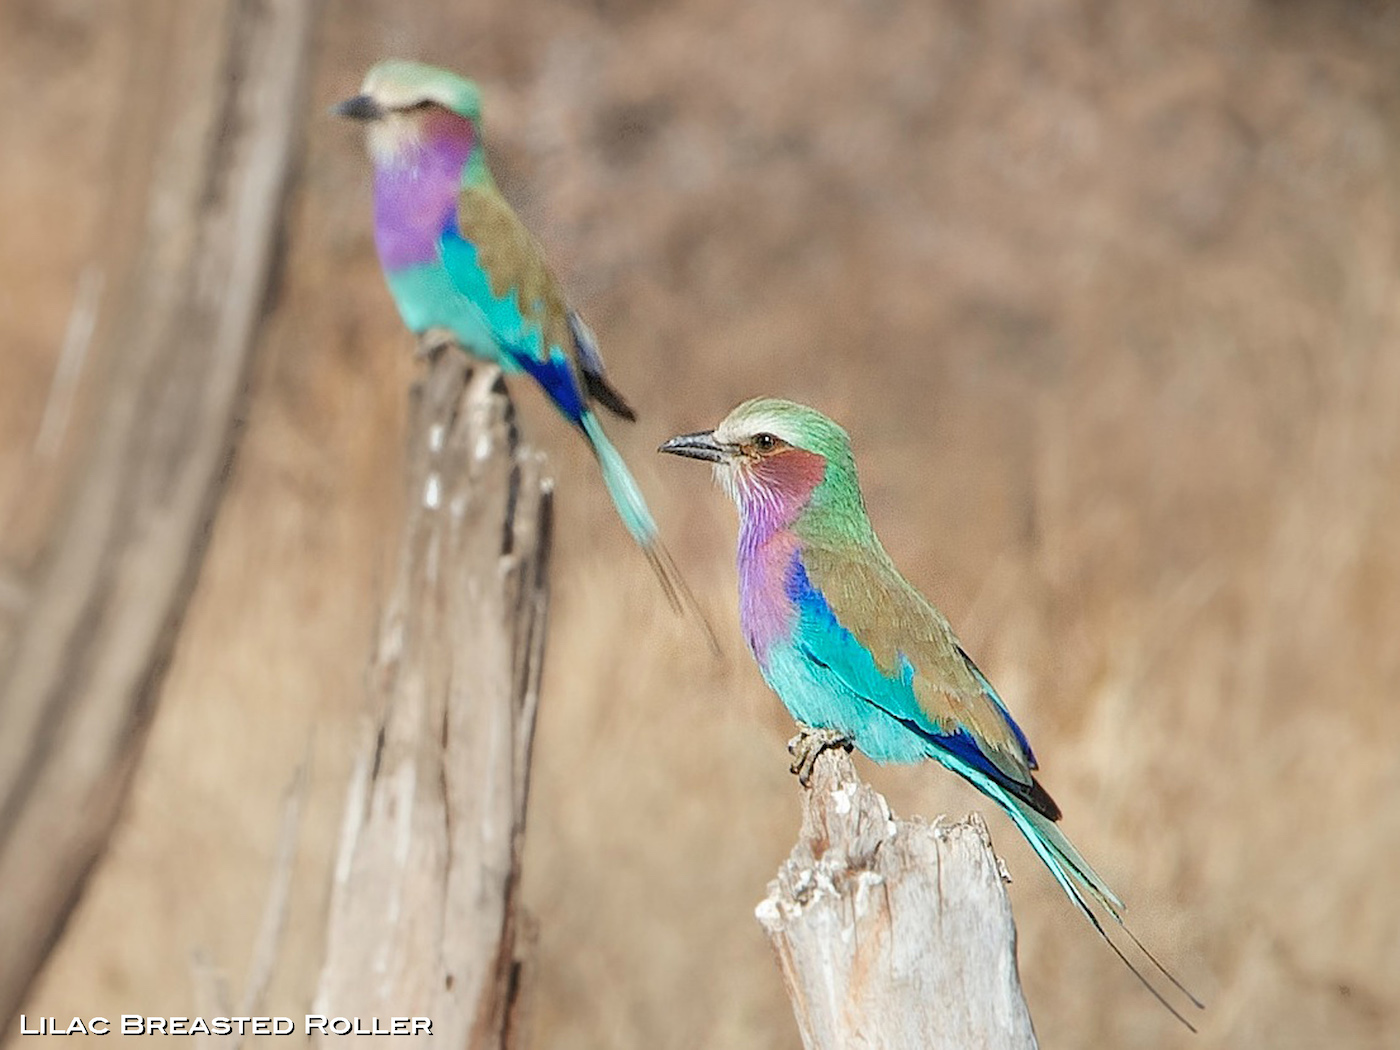 namibia-Lilac-Breasted-Roller